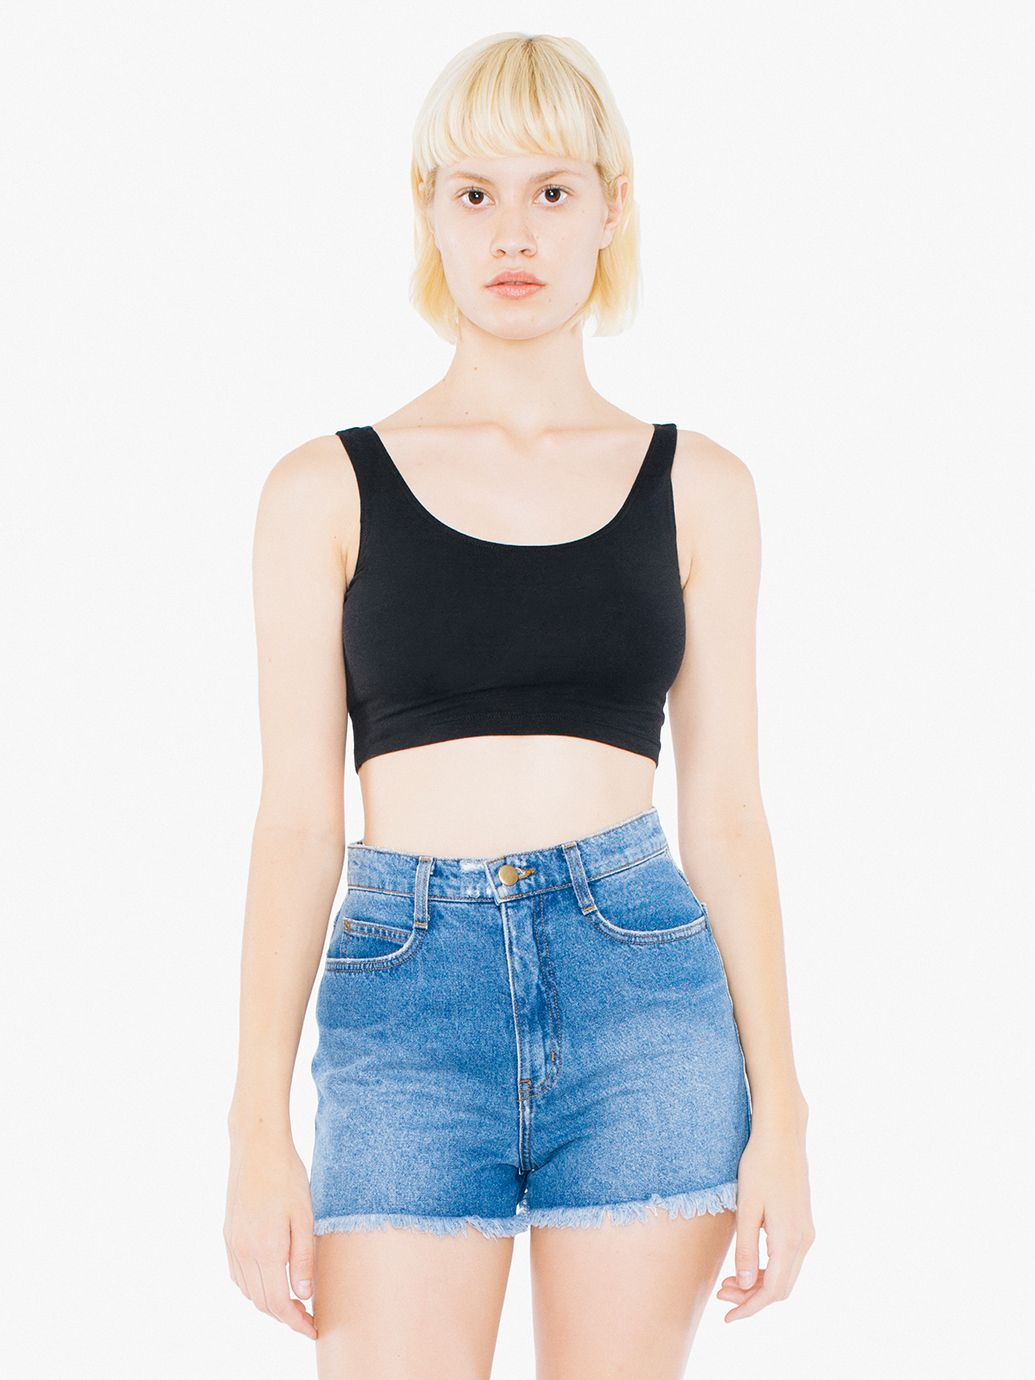 AMA Tanktop Crop Cot/Spandex For Her